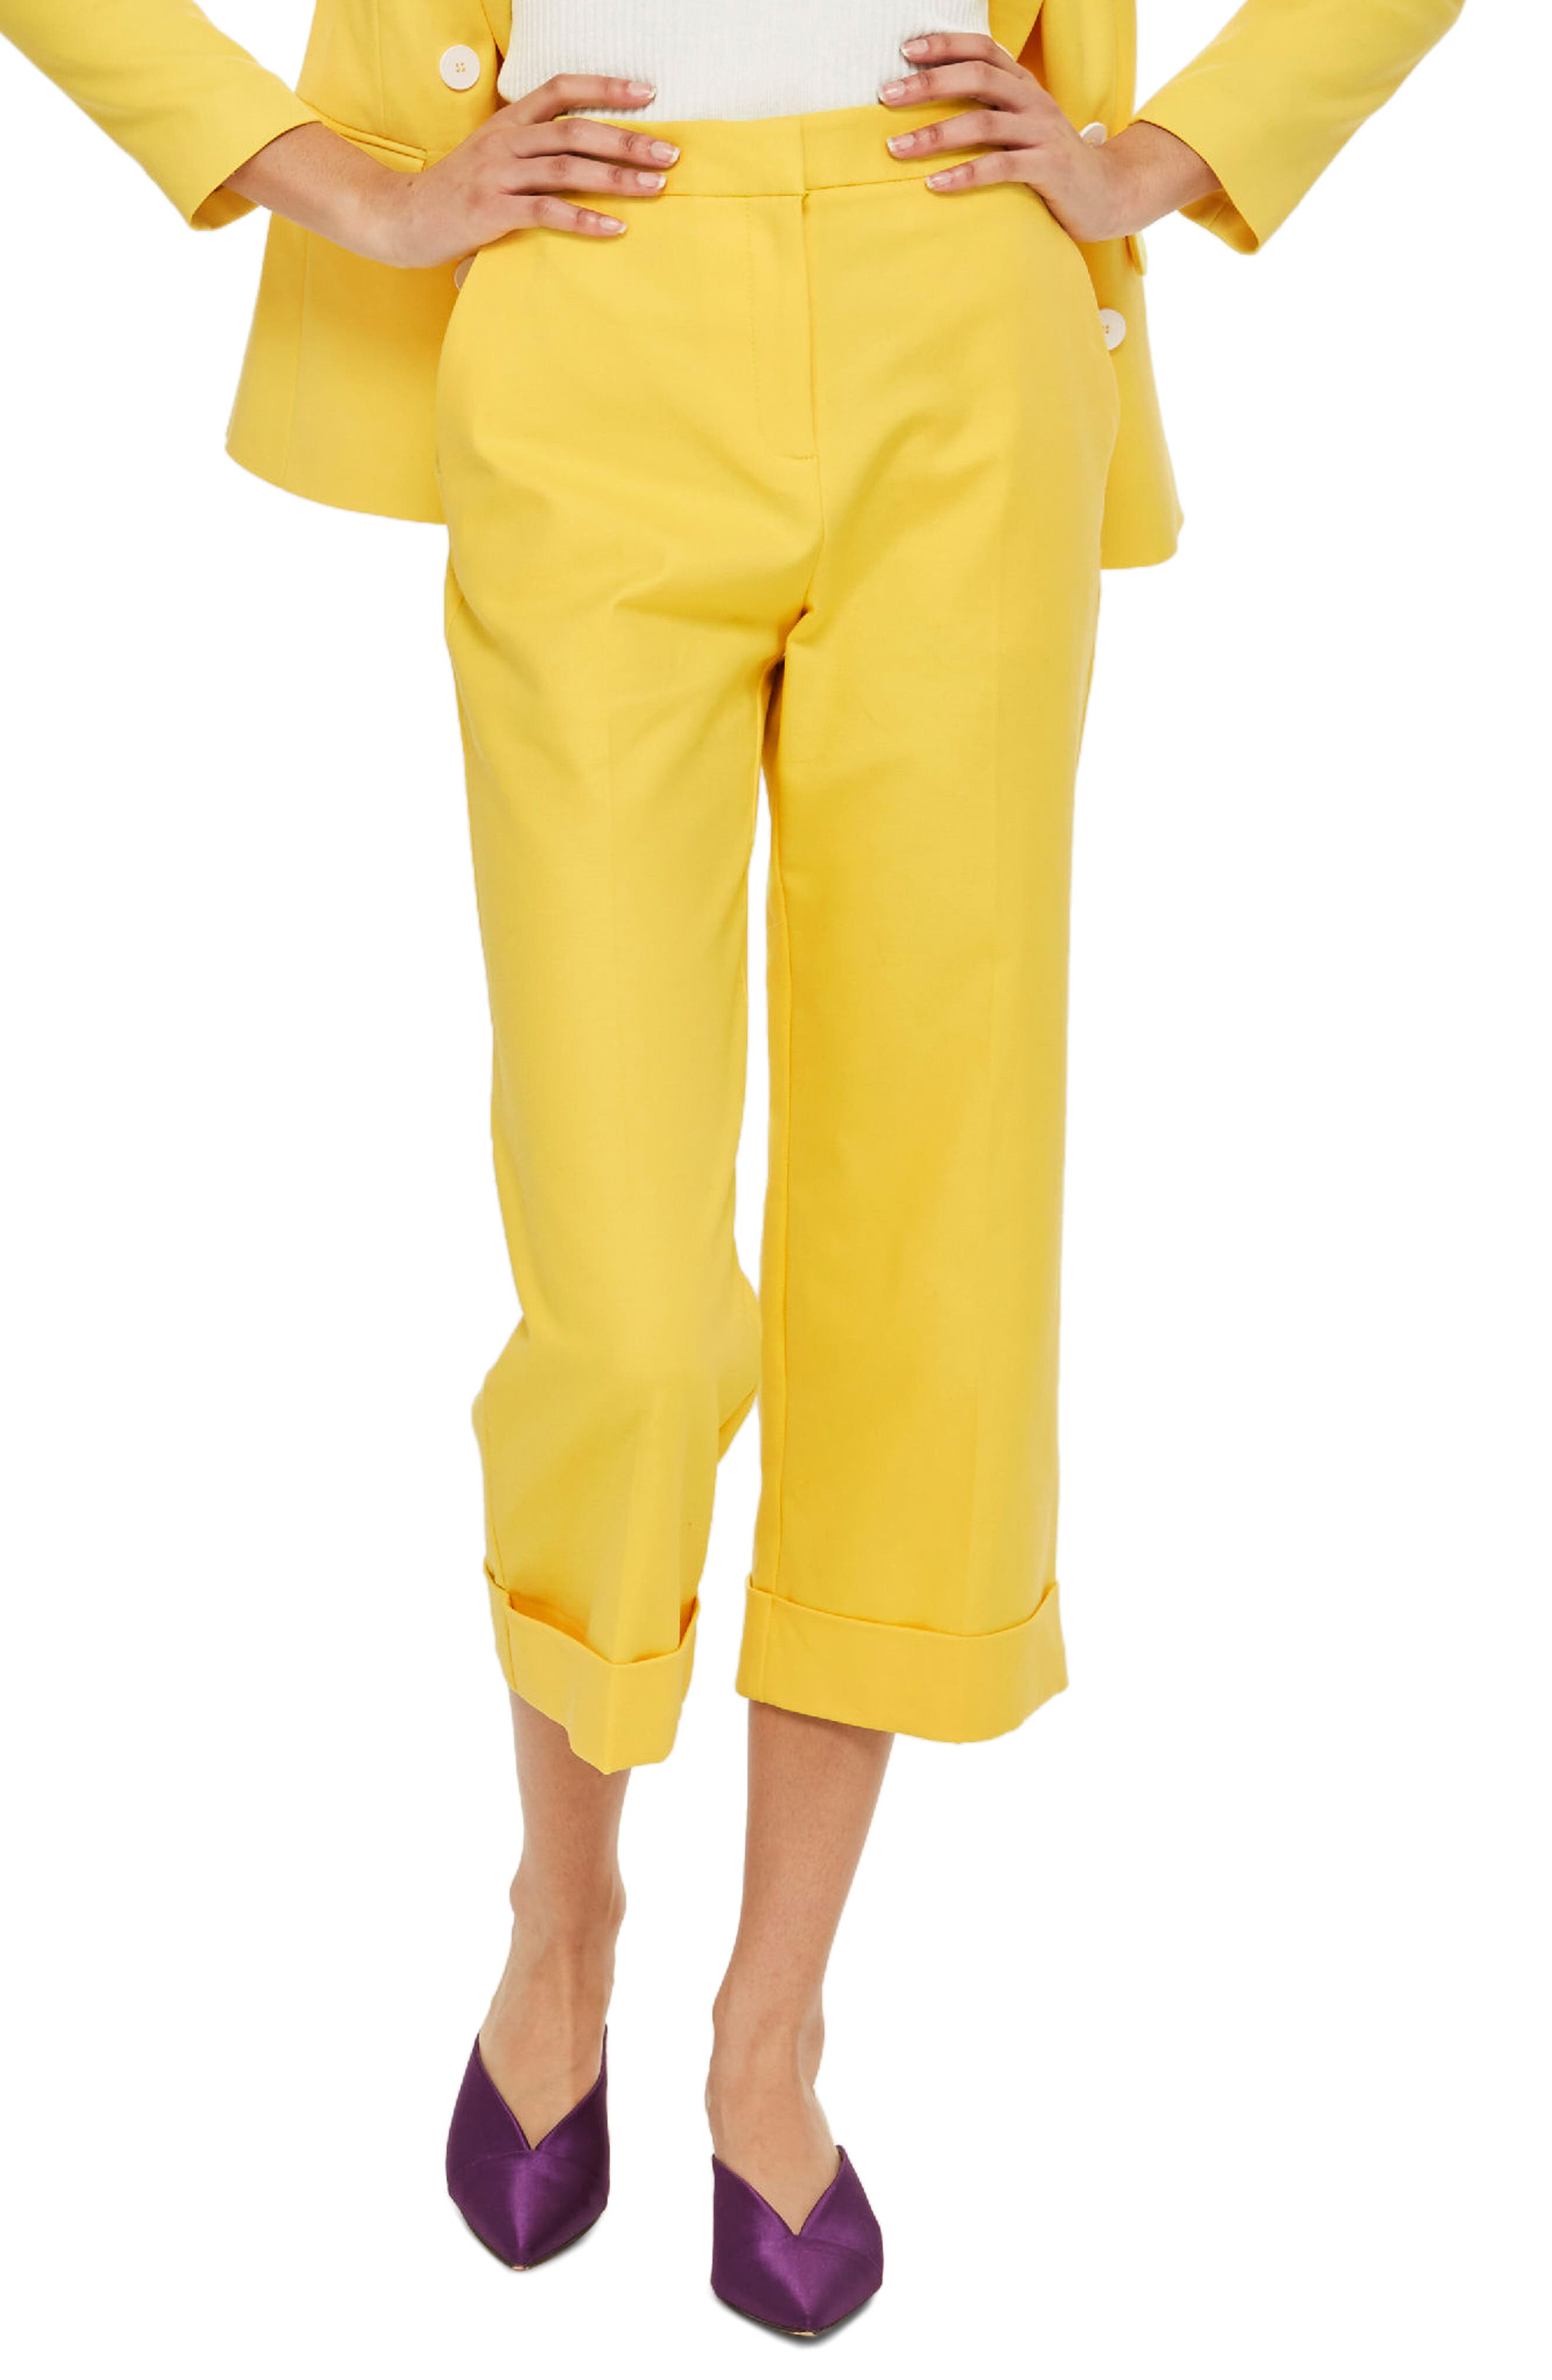 Milly Crop Suit Trousers,                             Main thumbnail 1, color,                             700